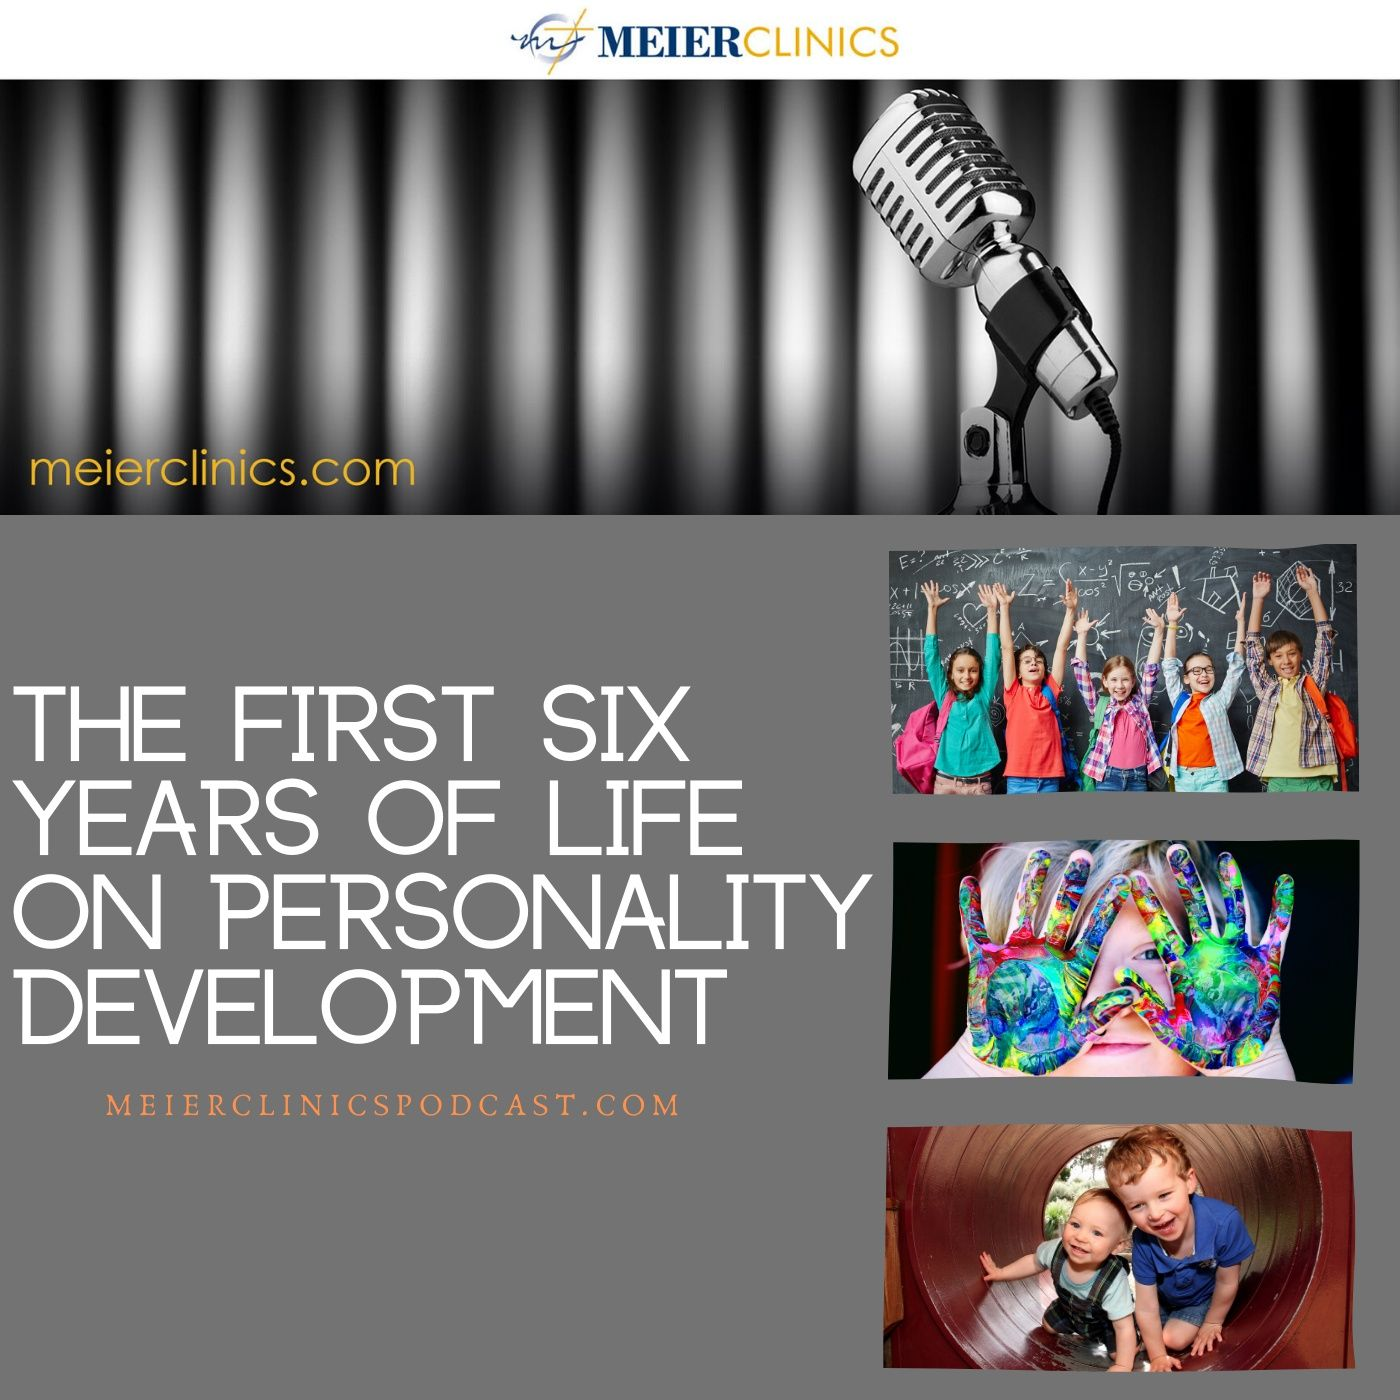 The First Six Years of Life on Personality Development